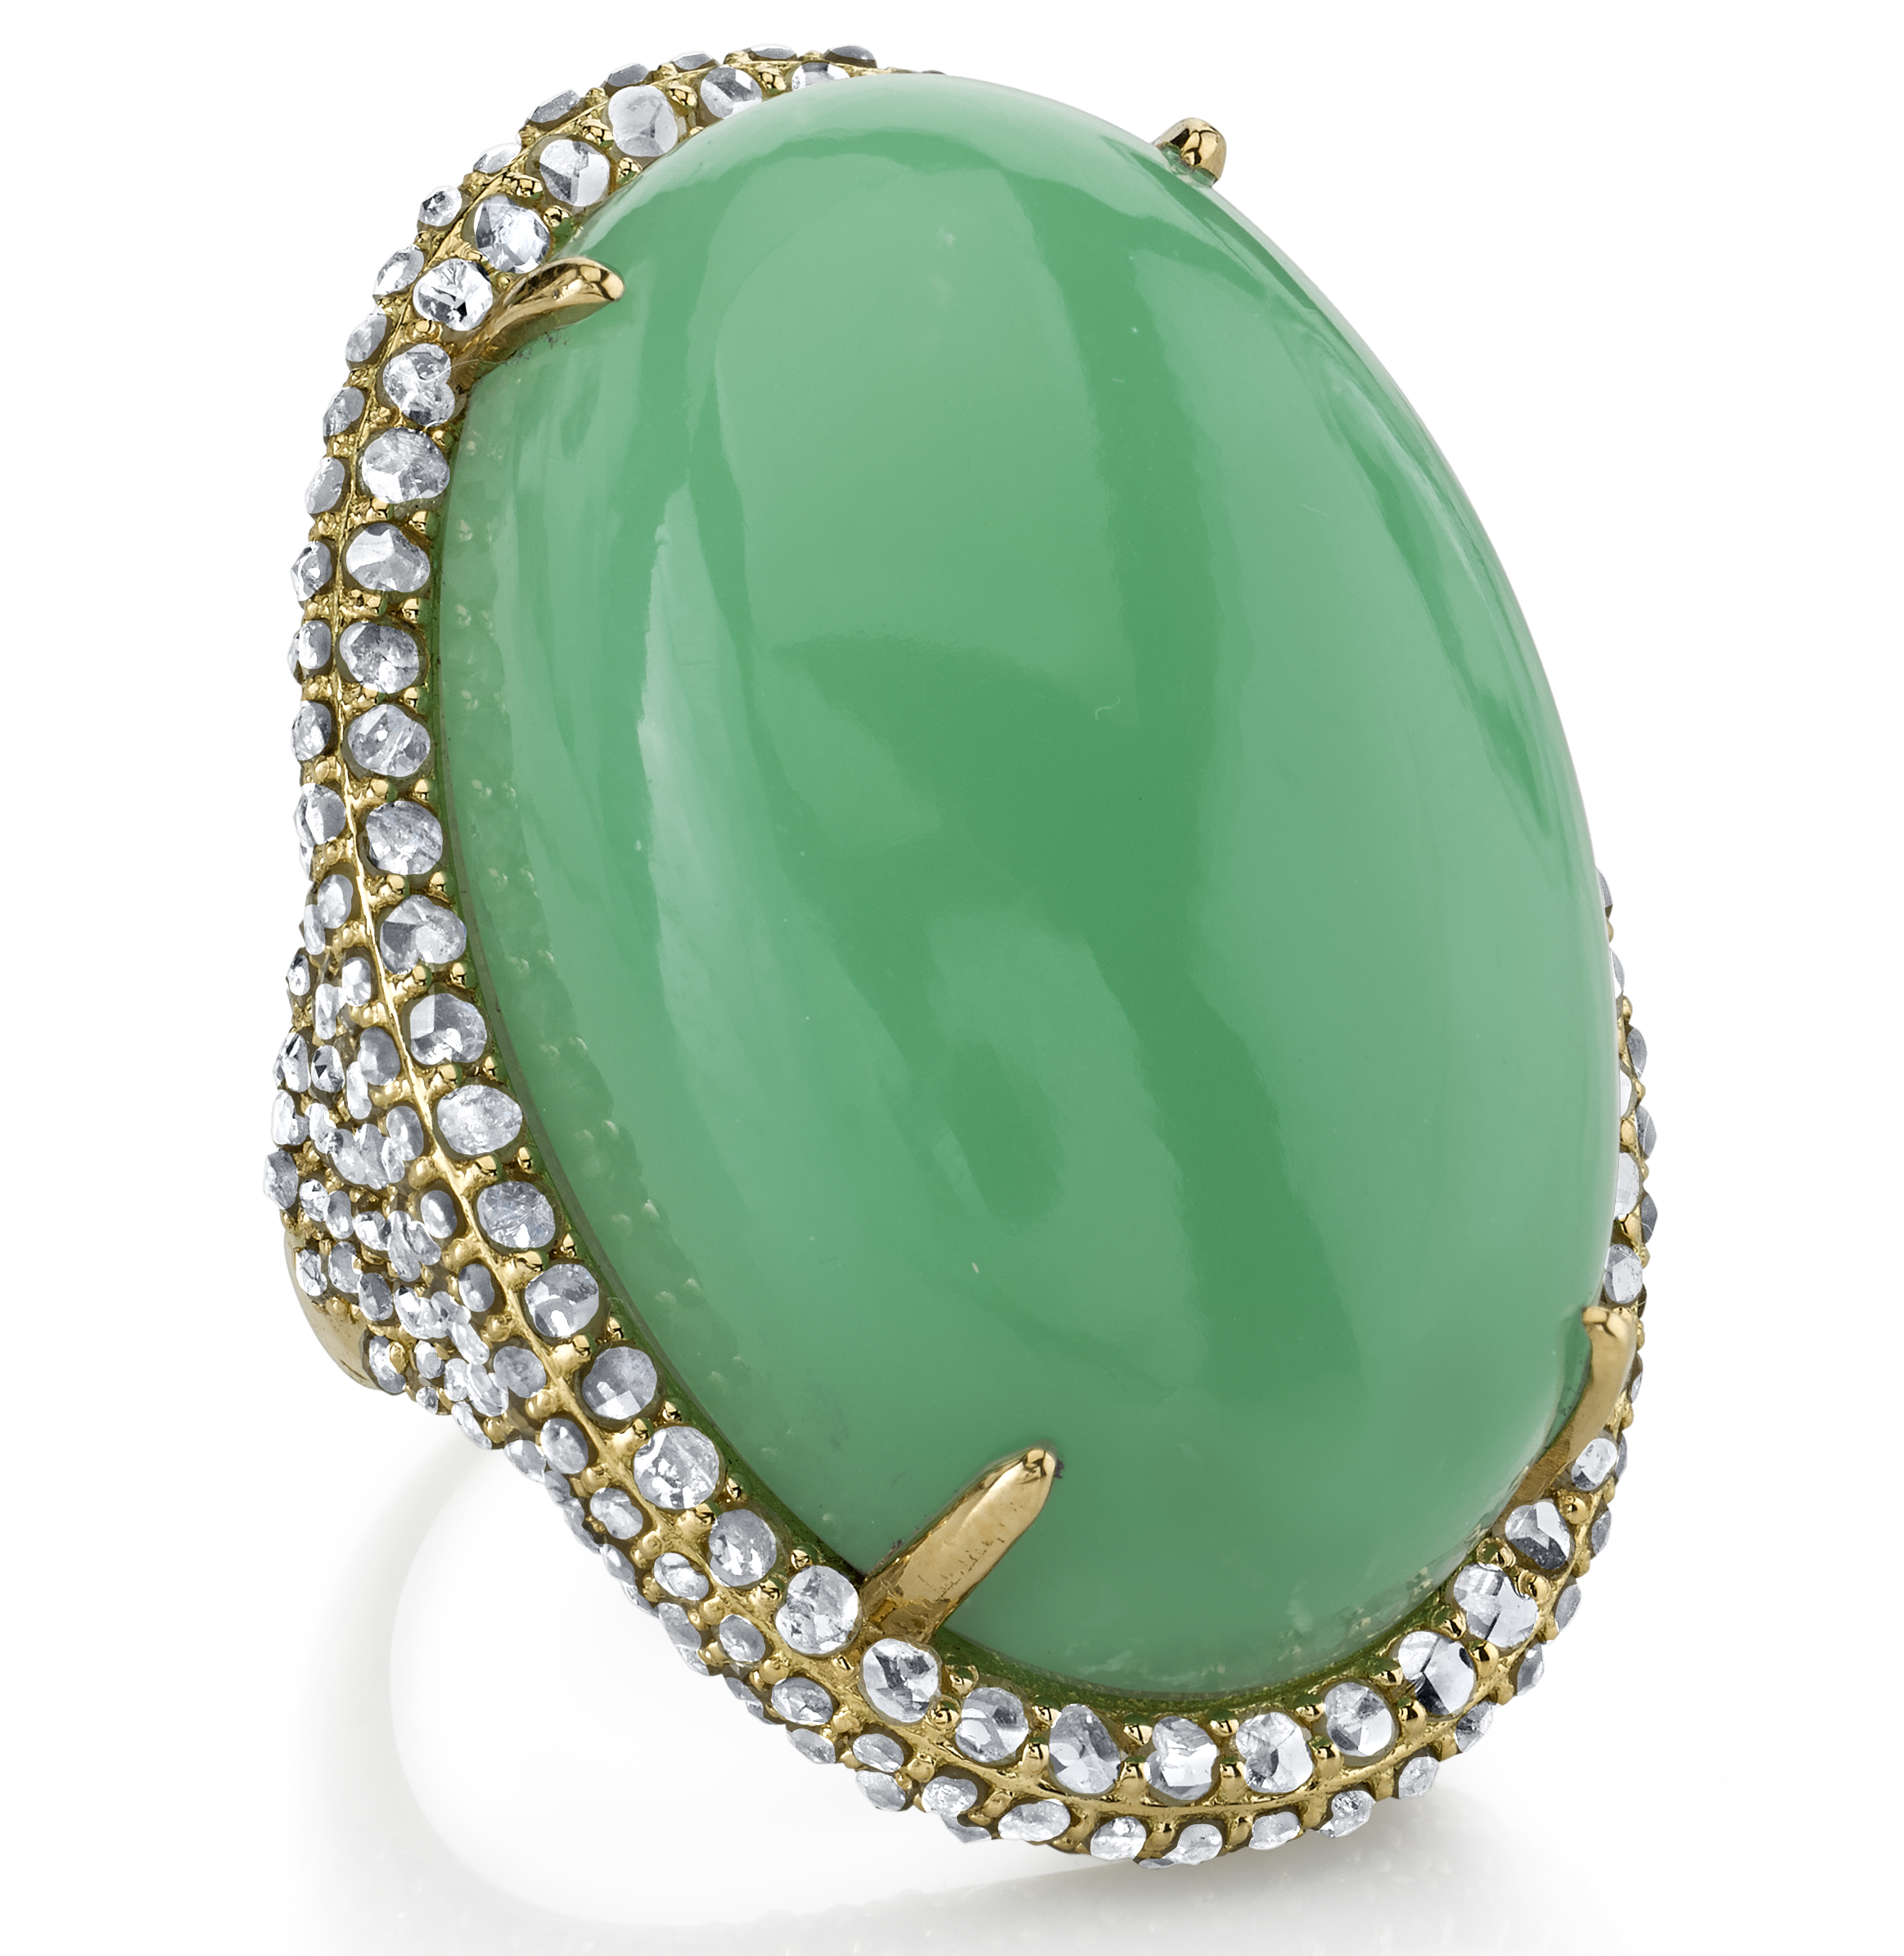 Bavna chrysoprase and diamond cocktail ring | JCK On Your Market